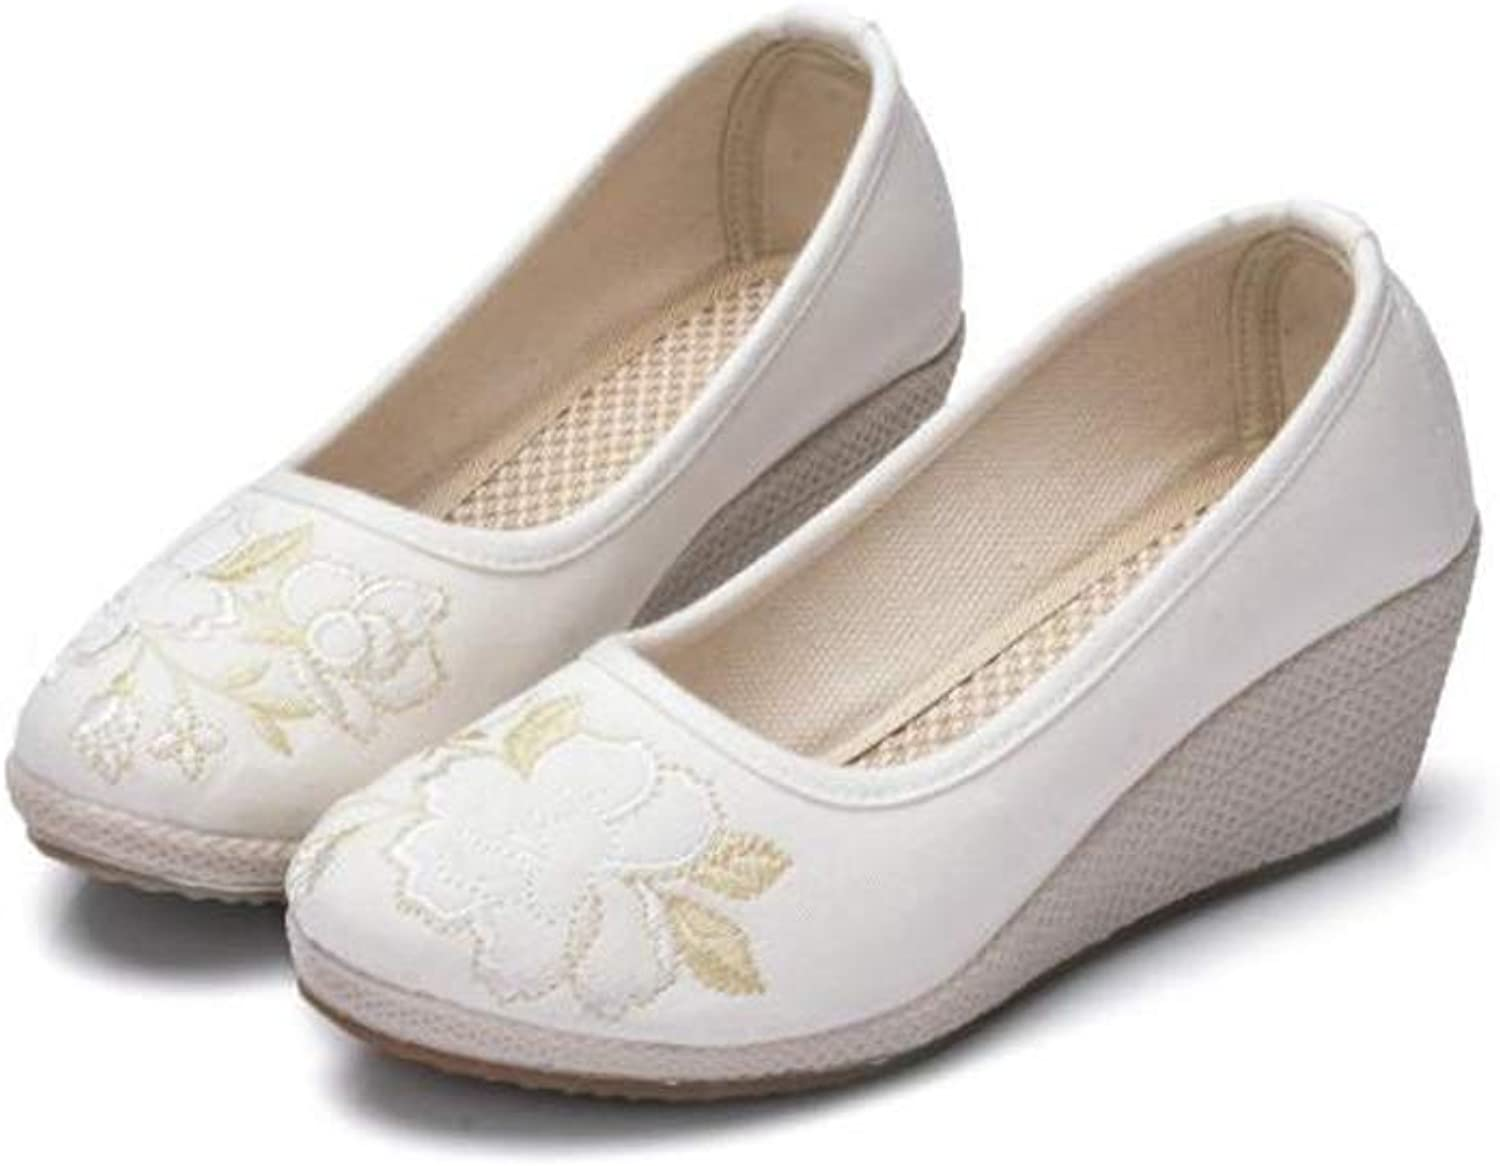 Lian Costume shoes Women's New shoes shoes Wedges Embroidered shoes High-Heeled shoes Embroidered shoes White